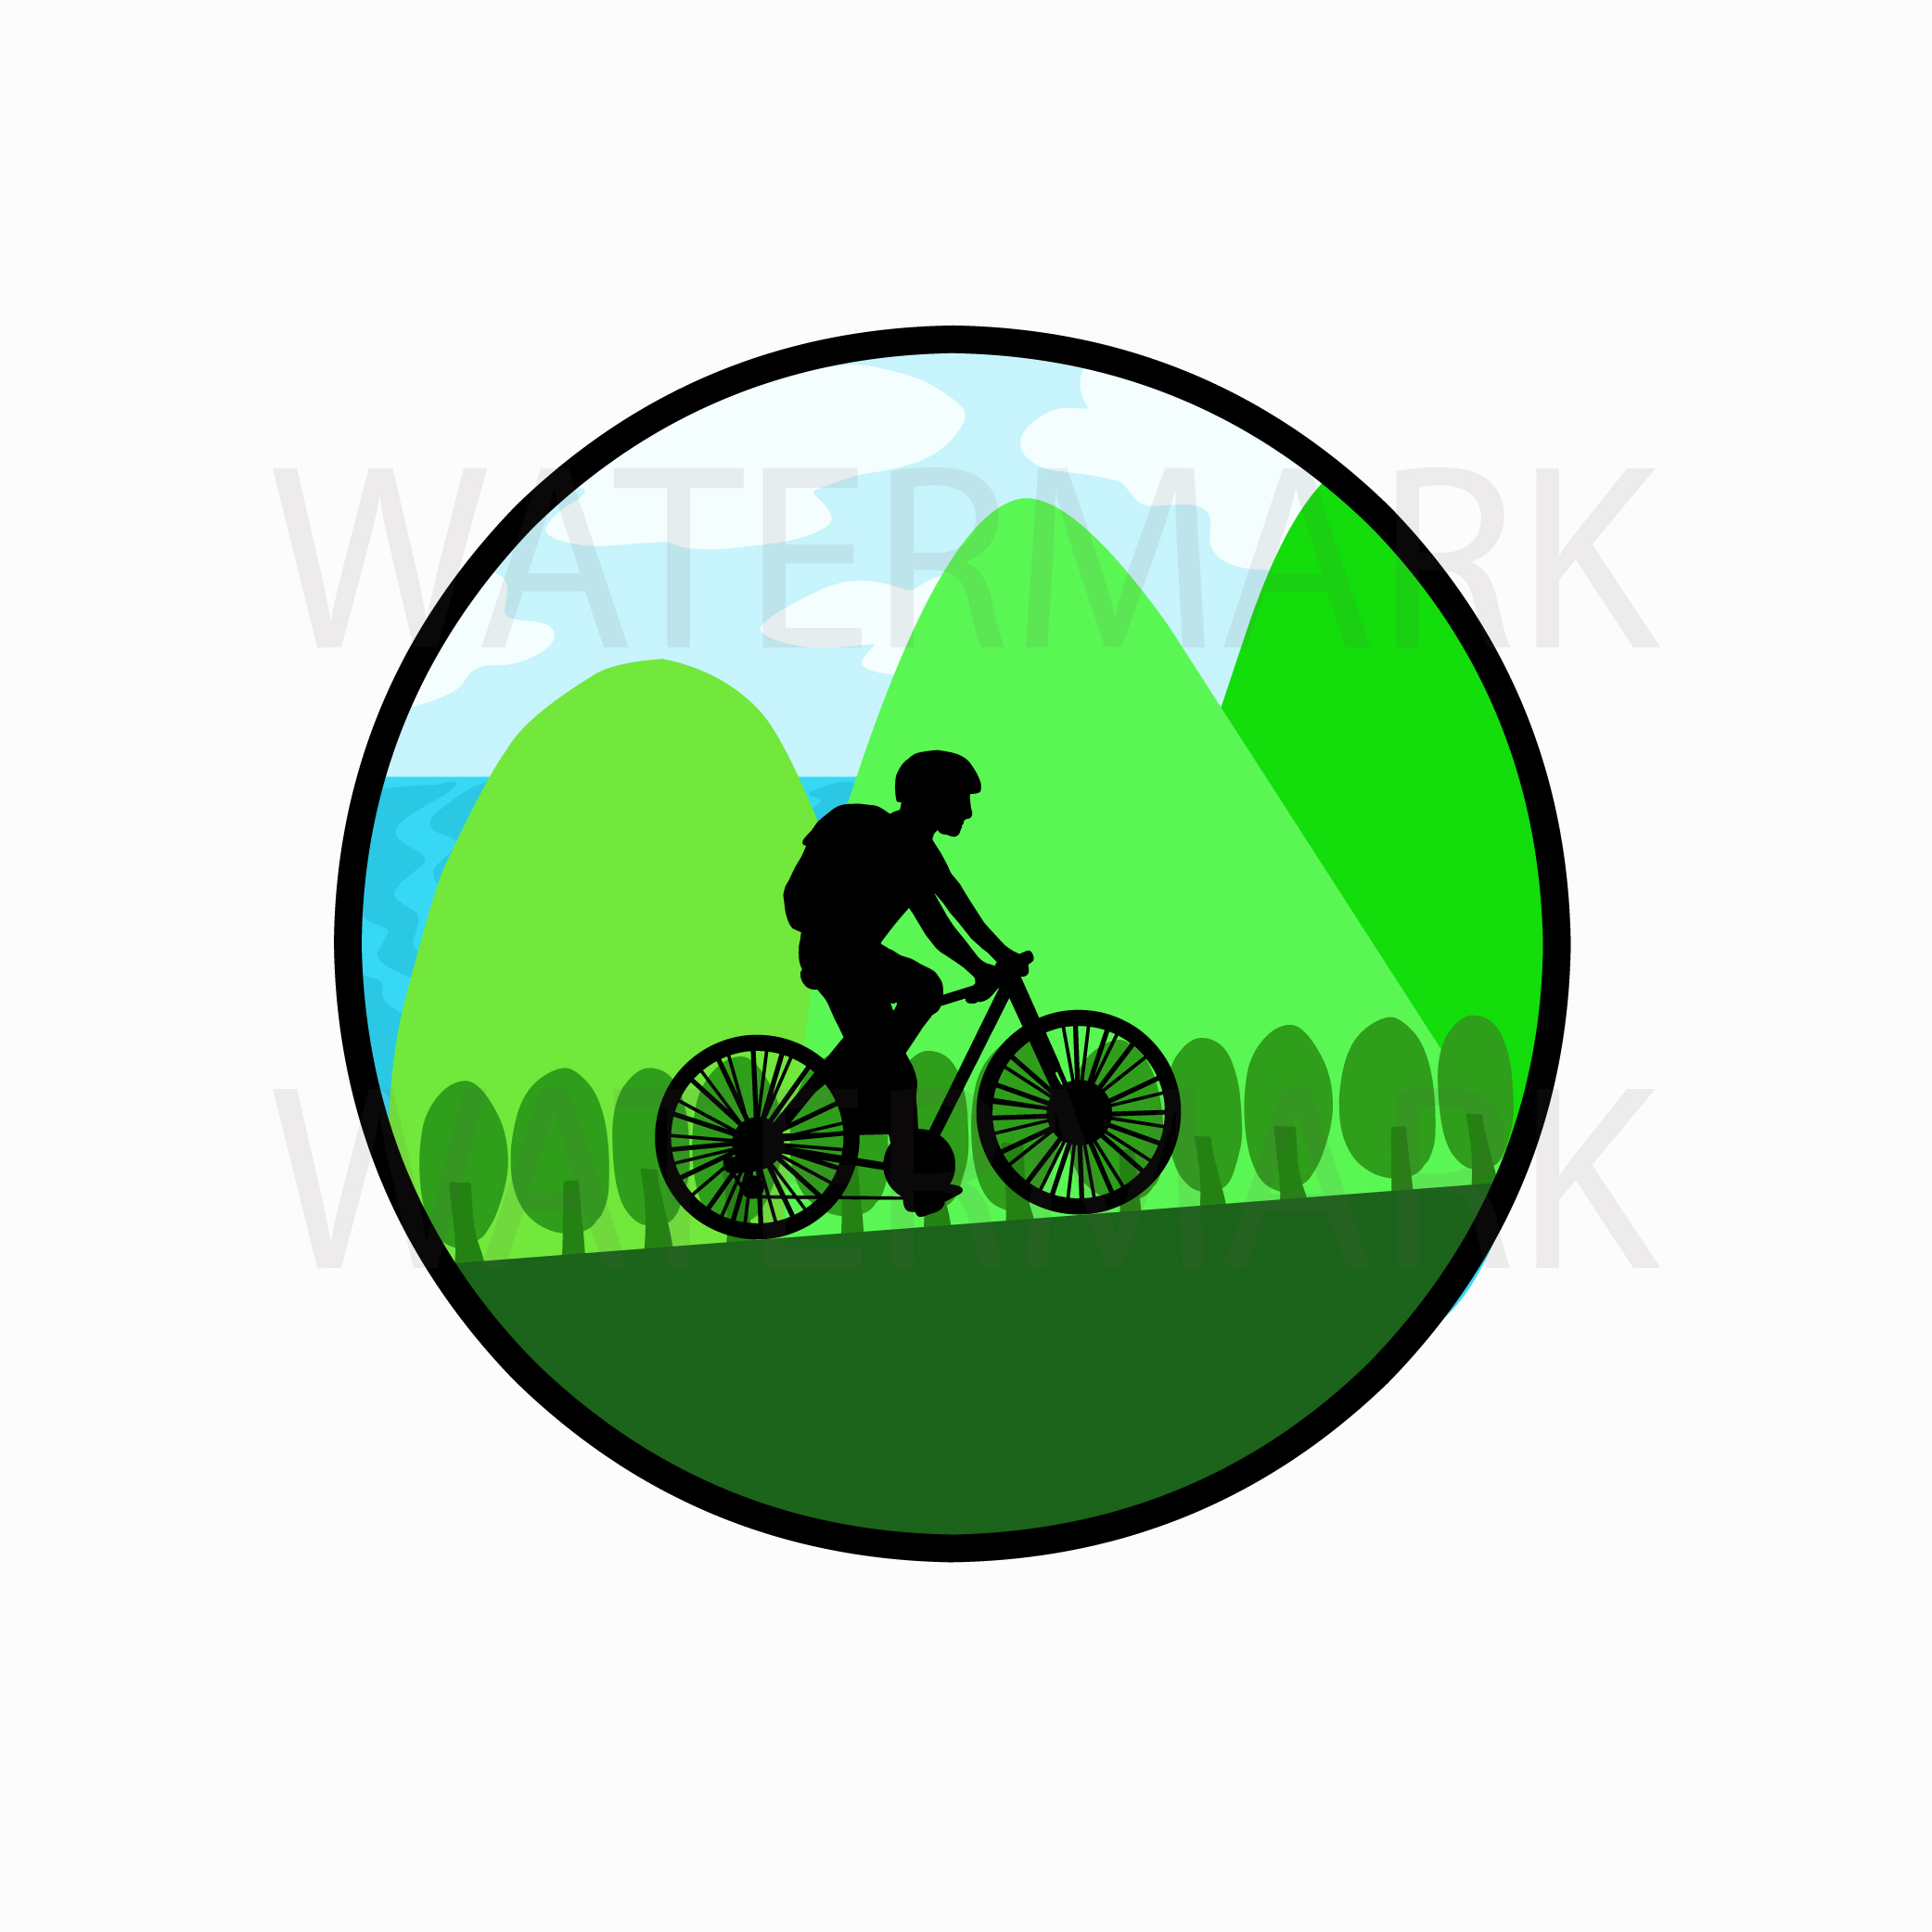 Bike on mountain by the lake - SVG/JPG/PNG Hand Drawing example image 1